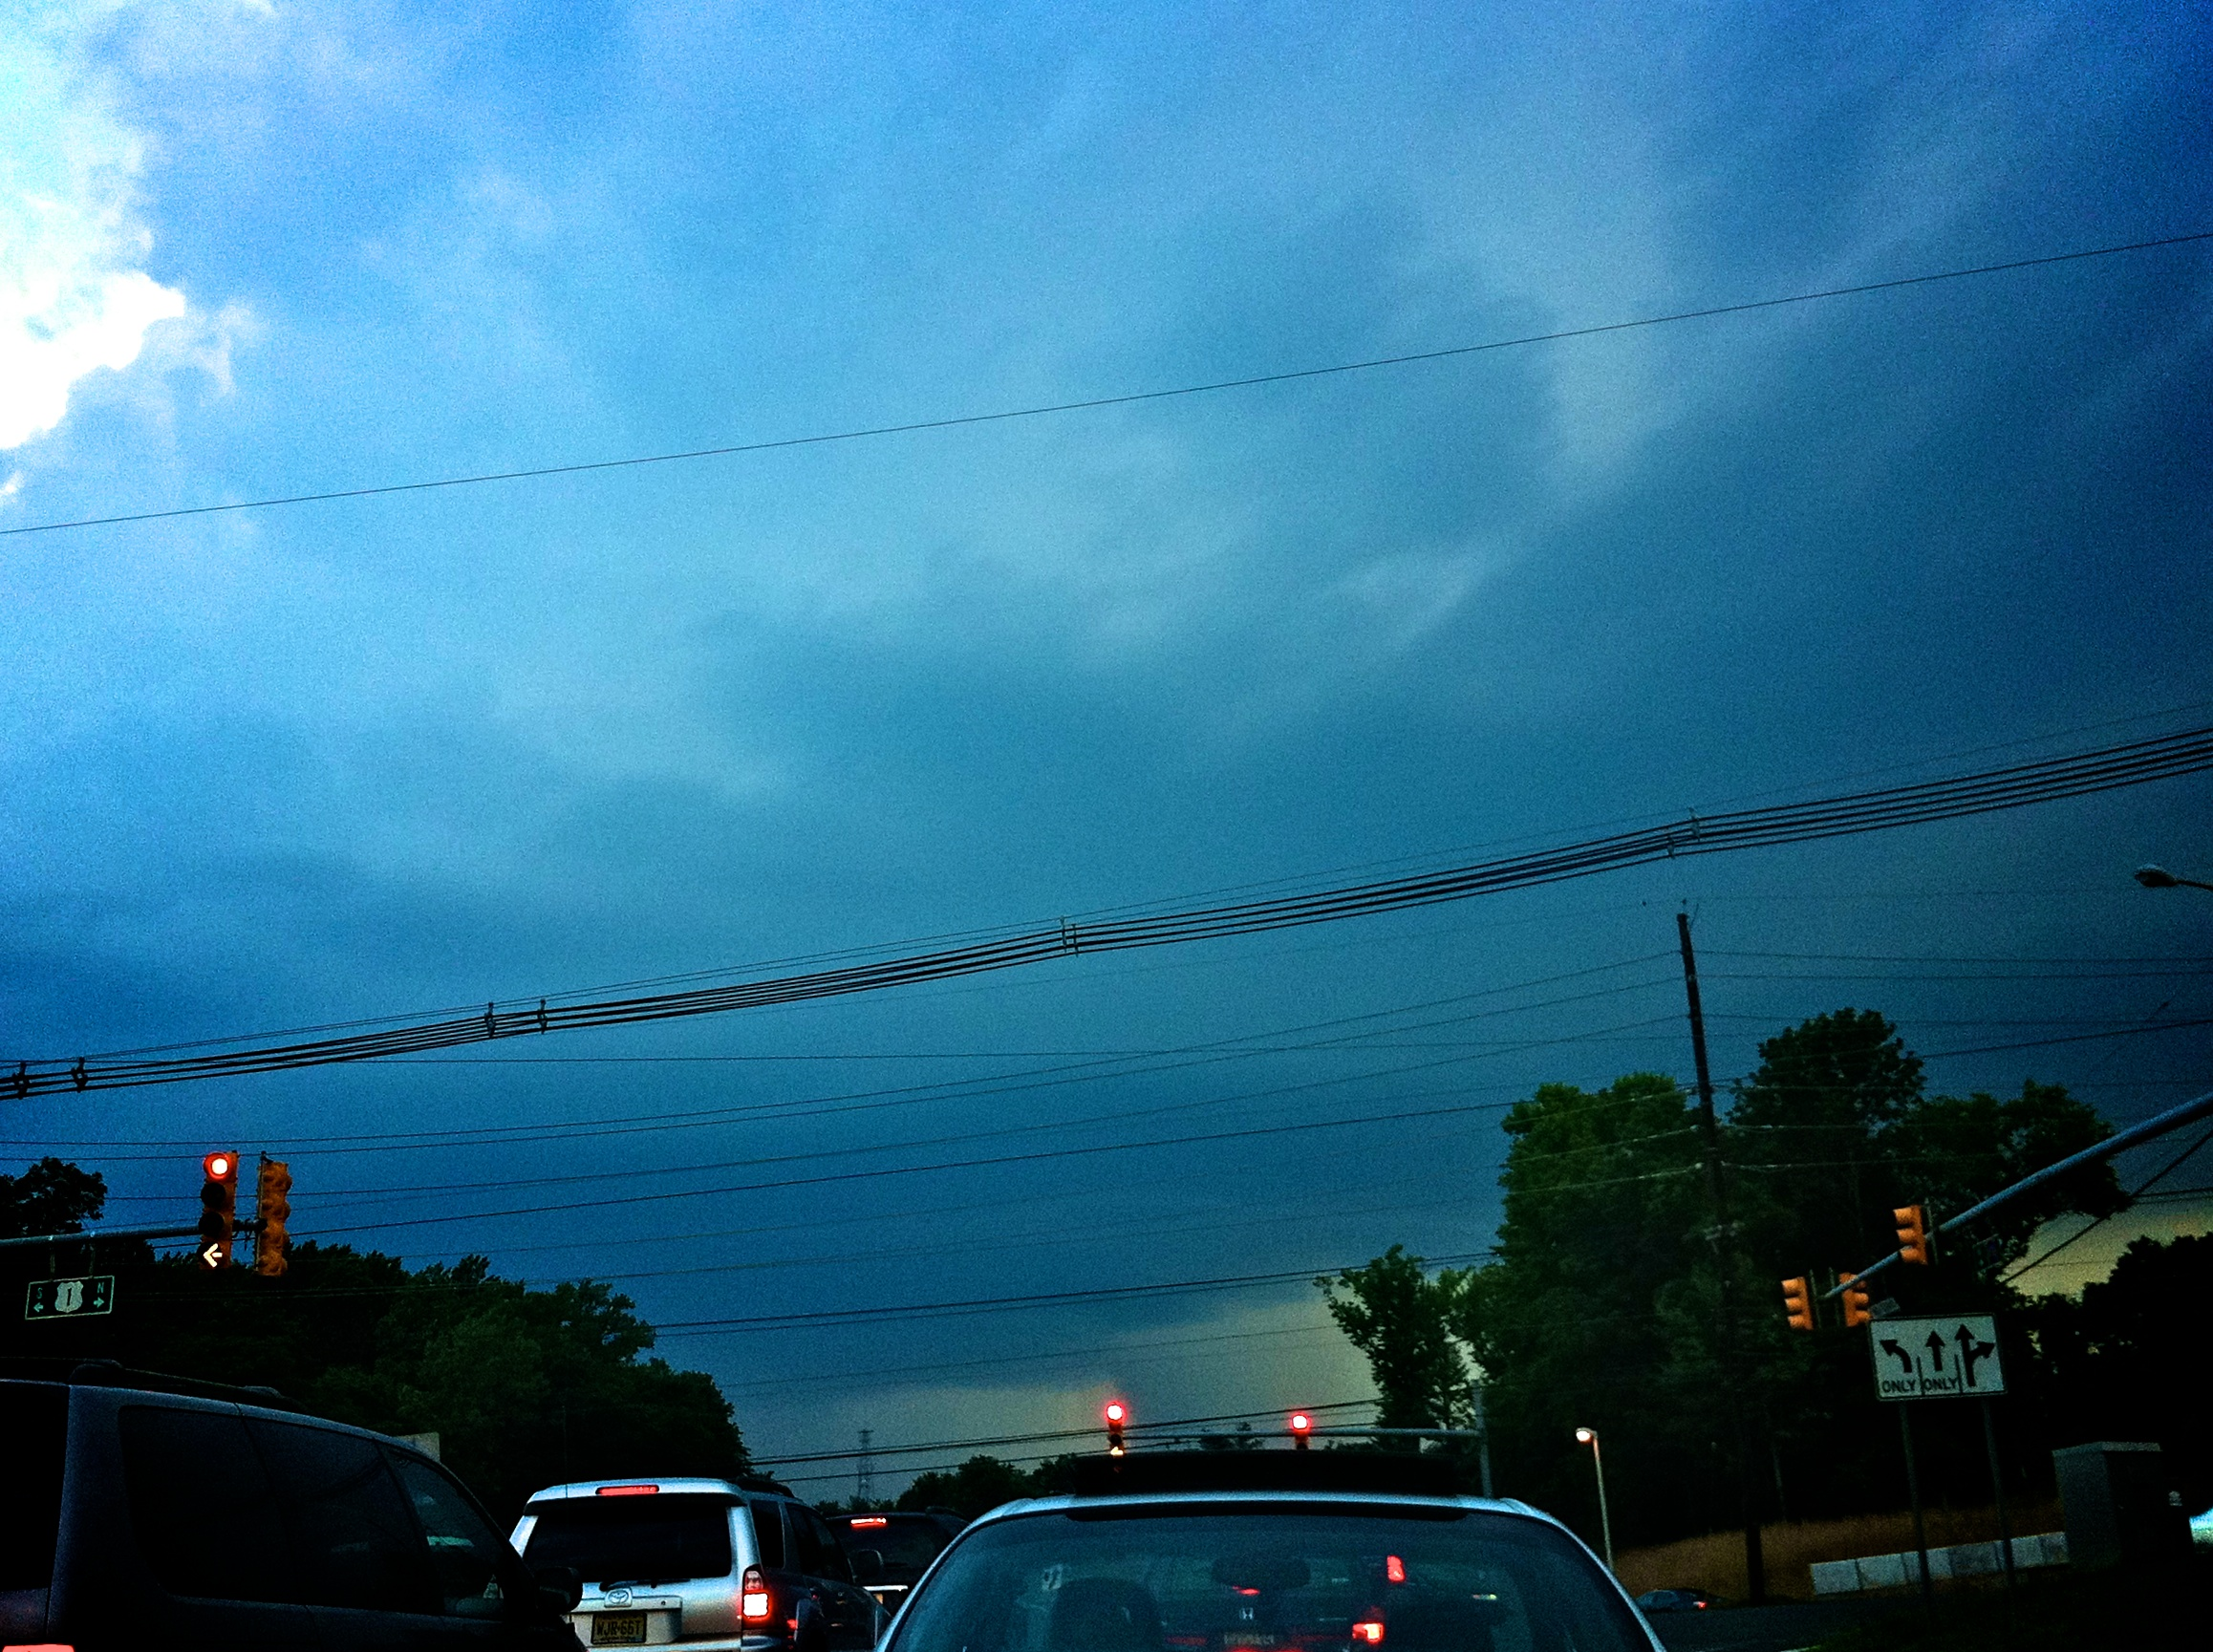 Day 187 - Storm Coming